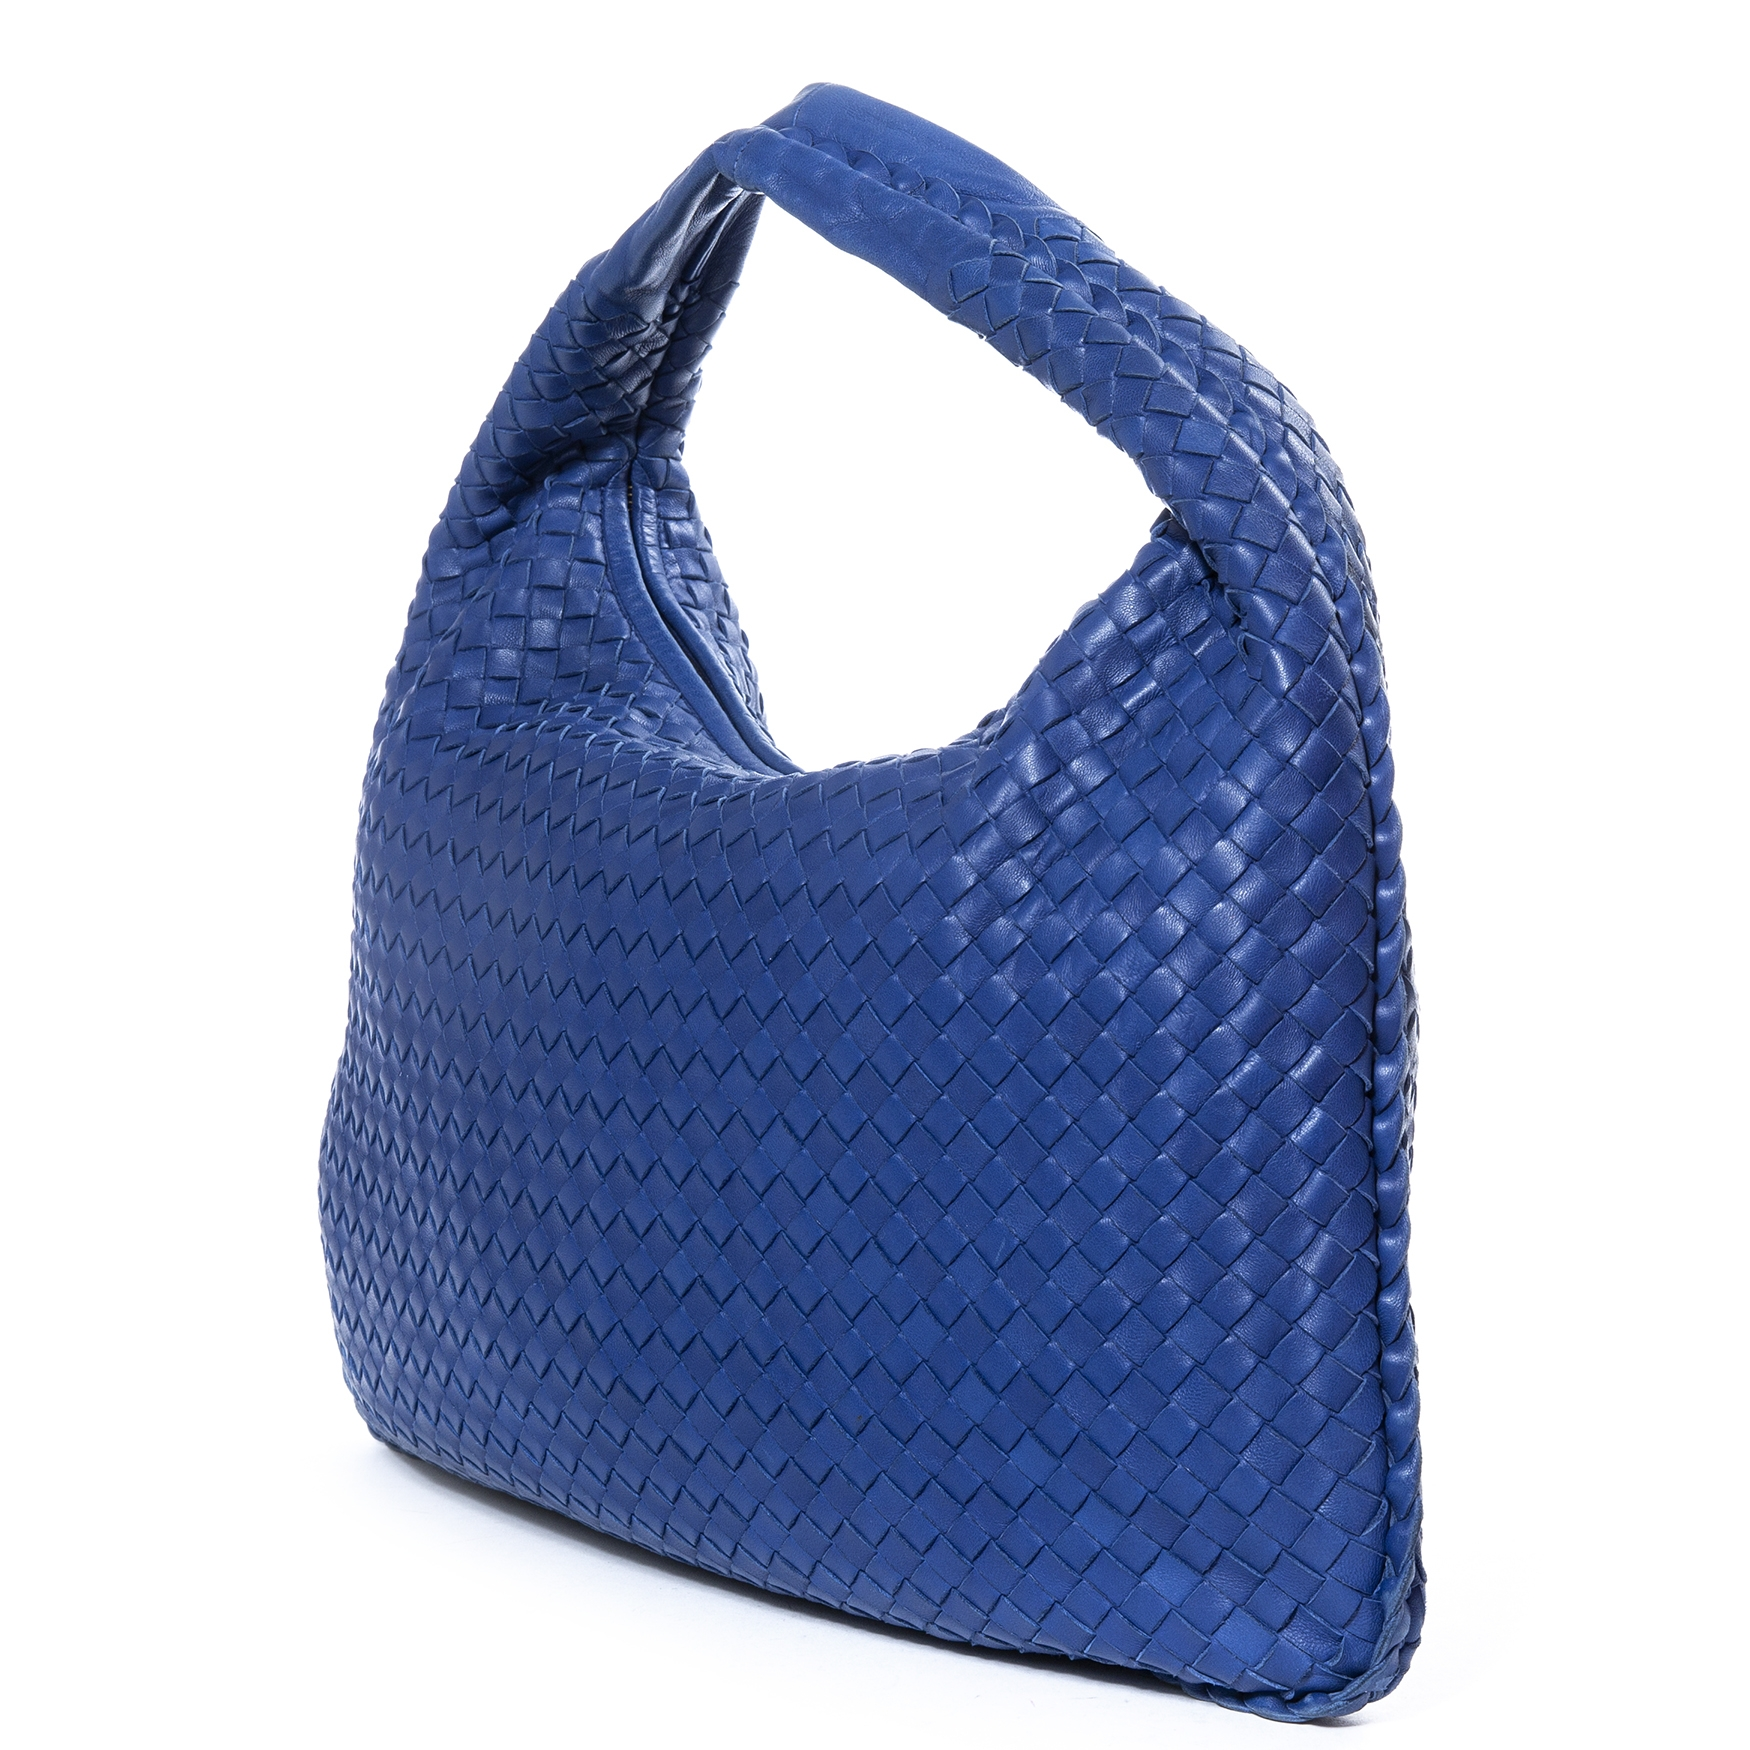 Bottega Veneta Intrecciato Blue Large Nappa Hobo Bag te koop